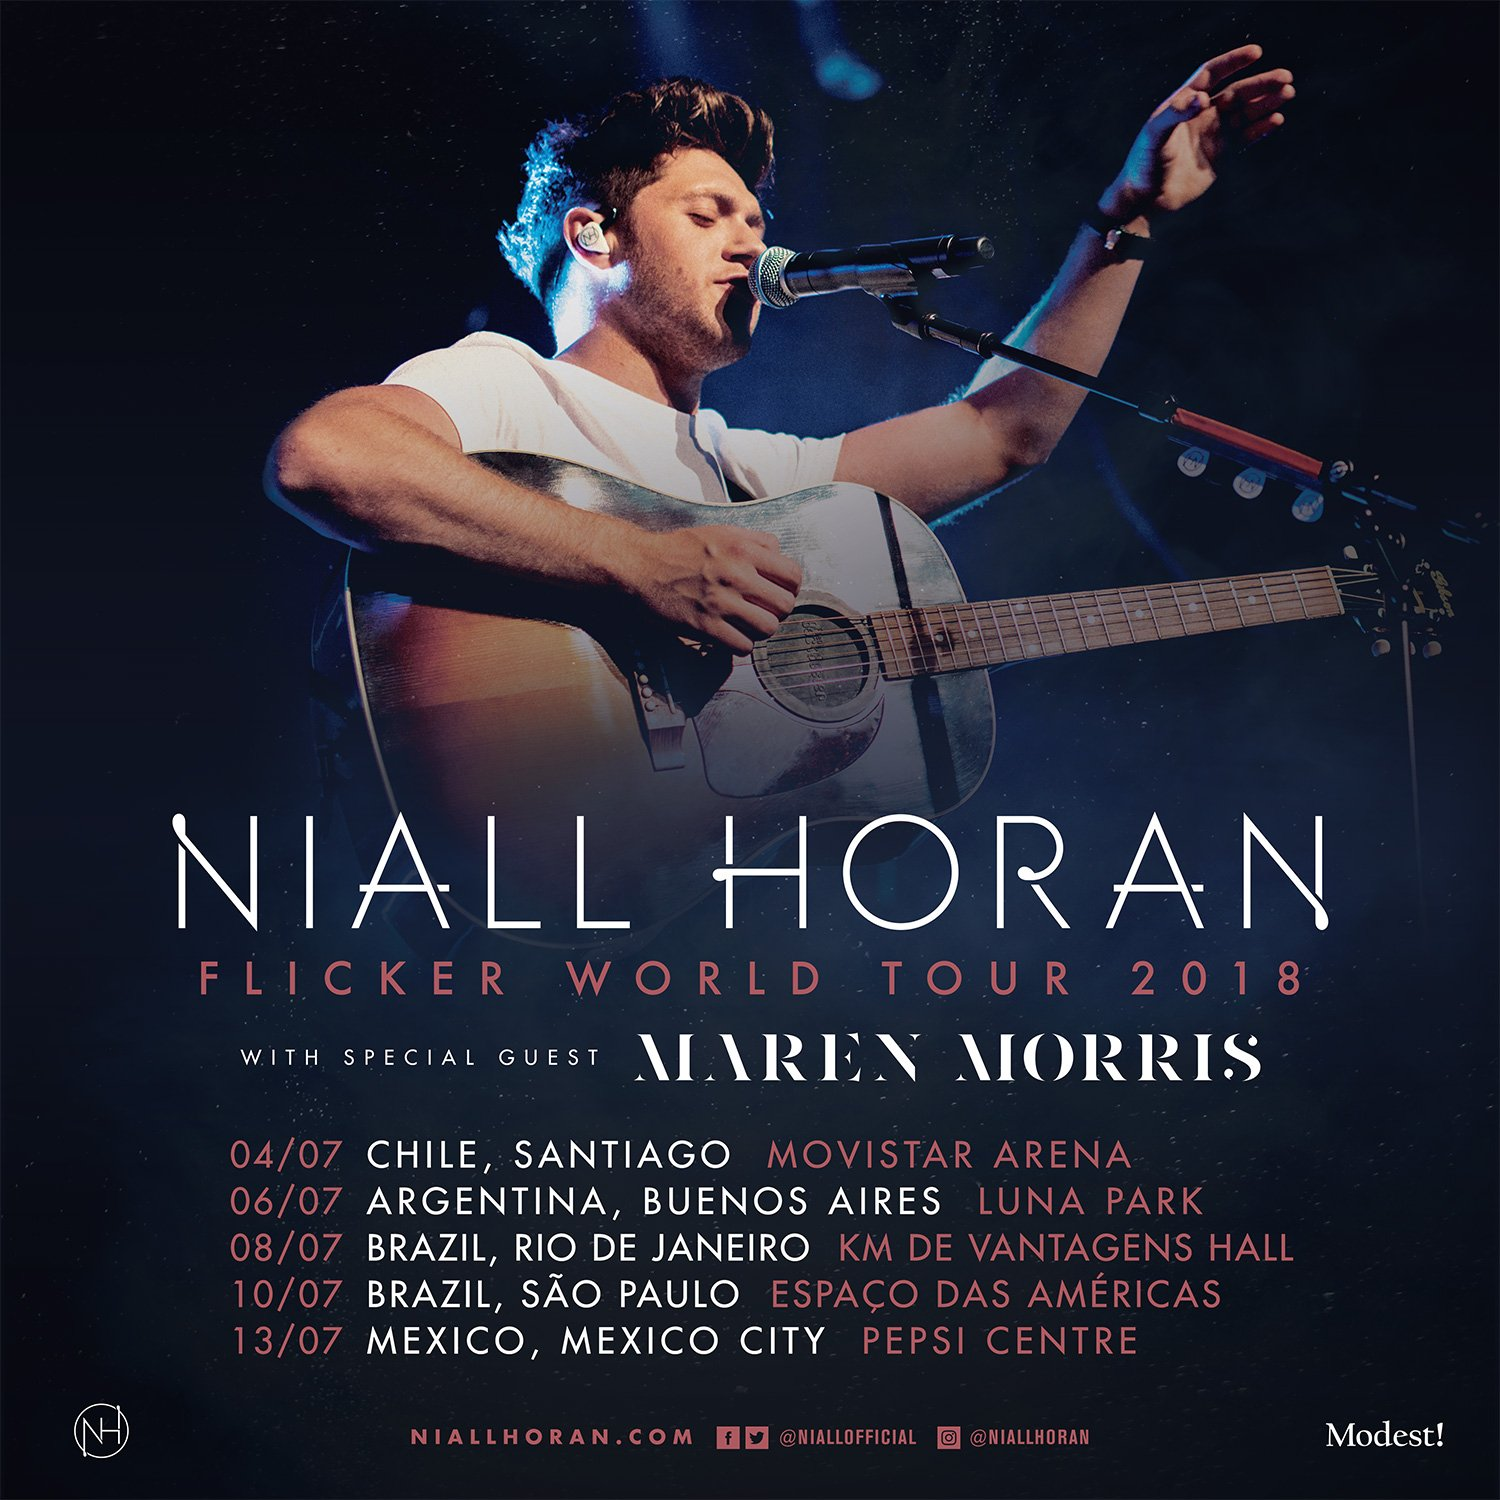 Mexico and South America , I'm bringing my Flicker World Tour to you in 2018 ! Looking forward to it ! https://t.co/5uvh68Ixzc